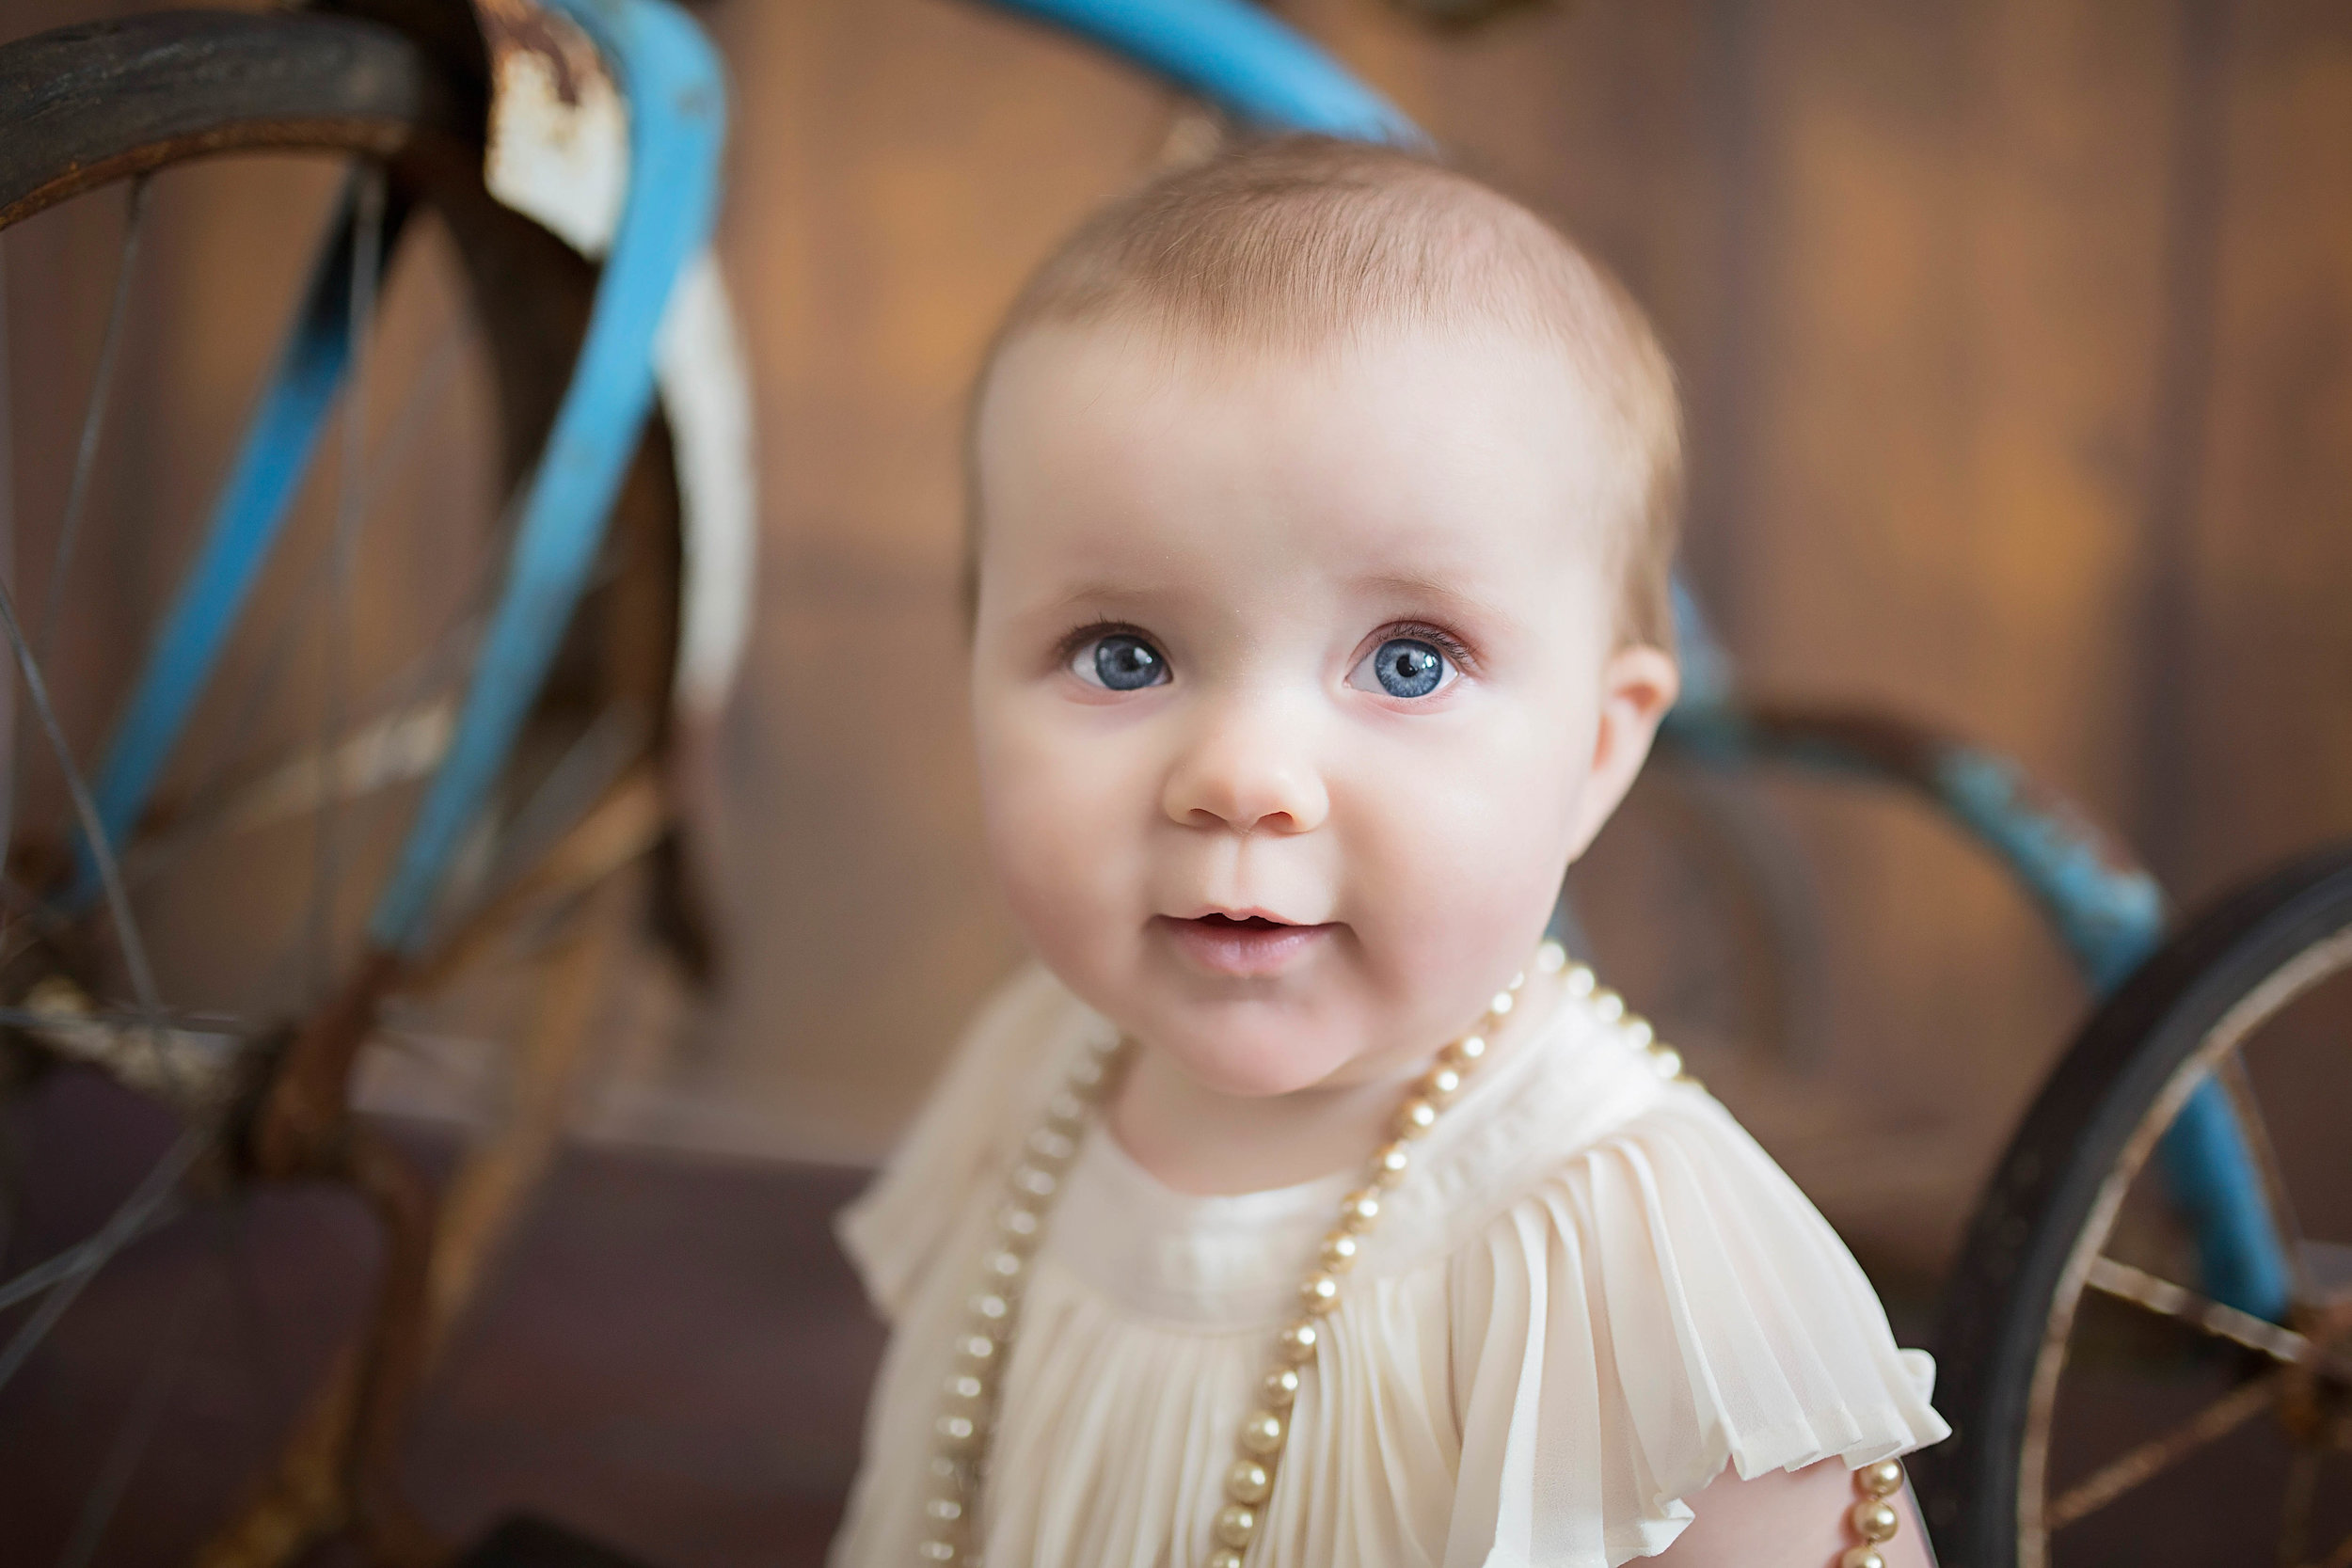 Little Miss Oak is just 7 months old and she should already be modelling in some baby magazine. She is just so darn cute. Those big eyes and that precious smile just pull at my heart strings.